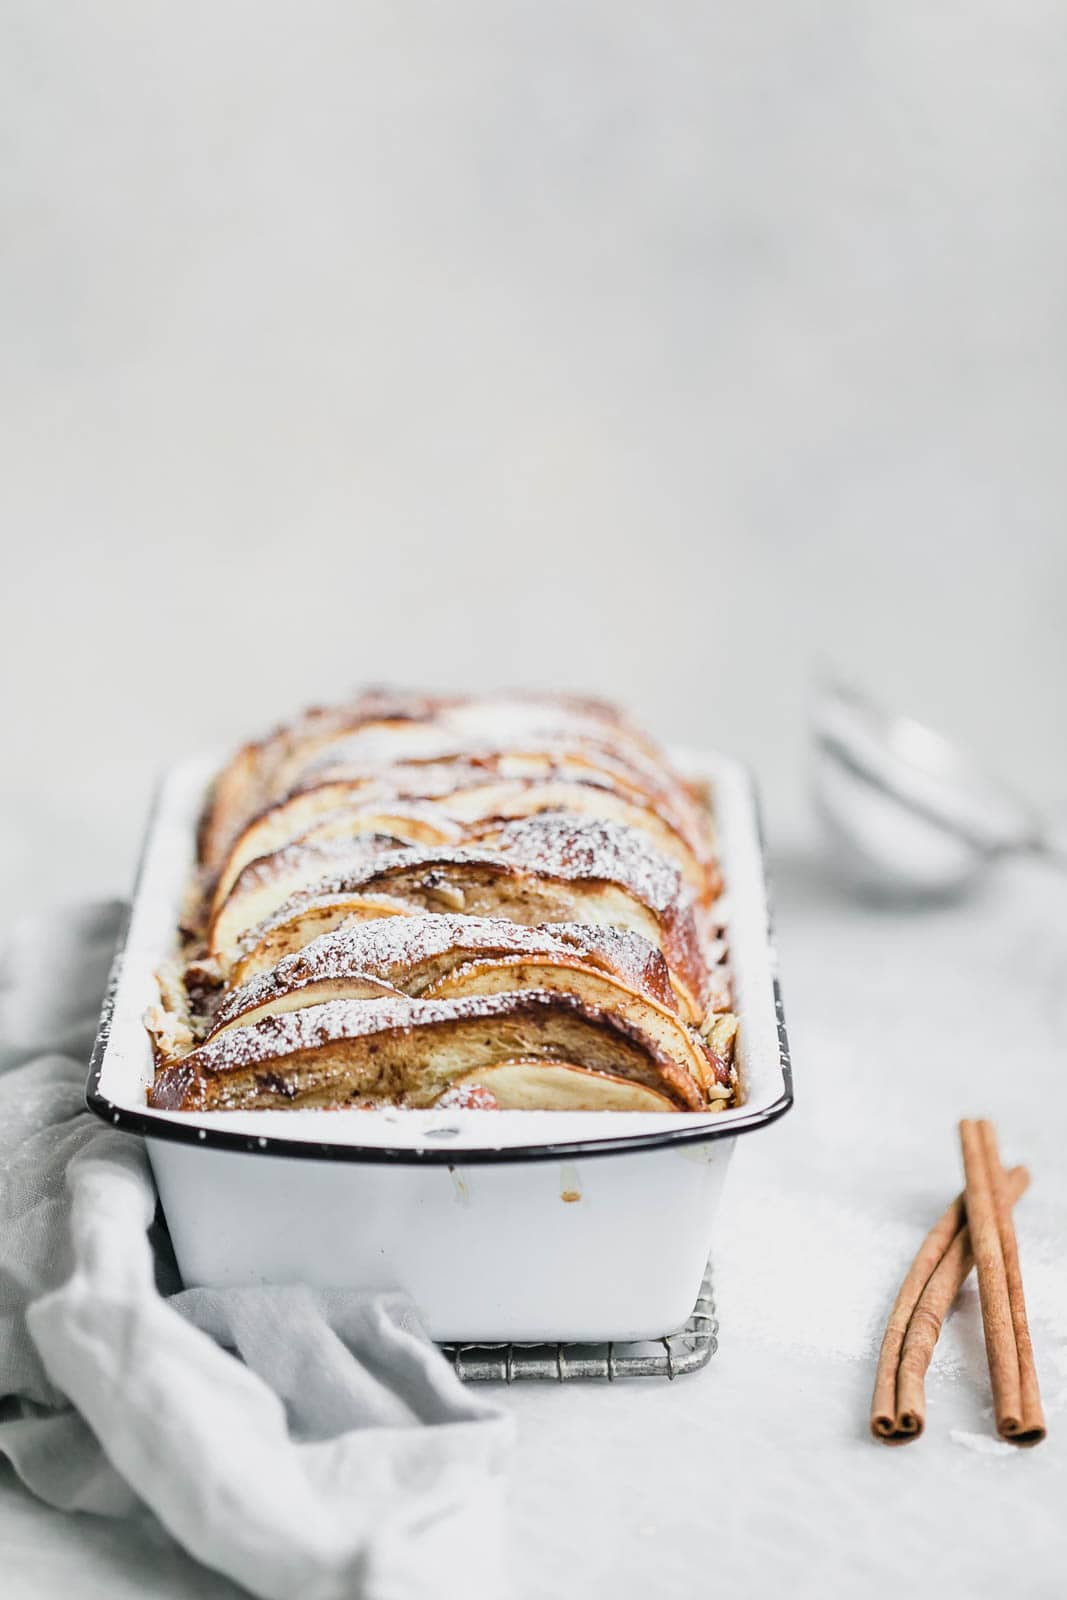 Baked Cinnamon Apple French Toast with cinnamon sticks